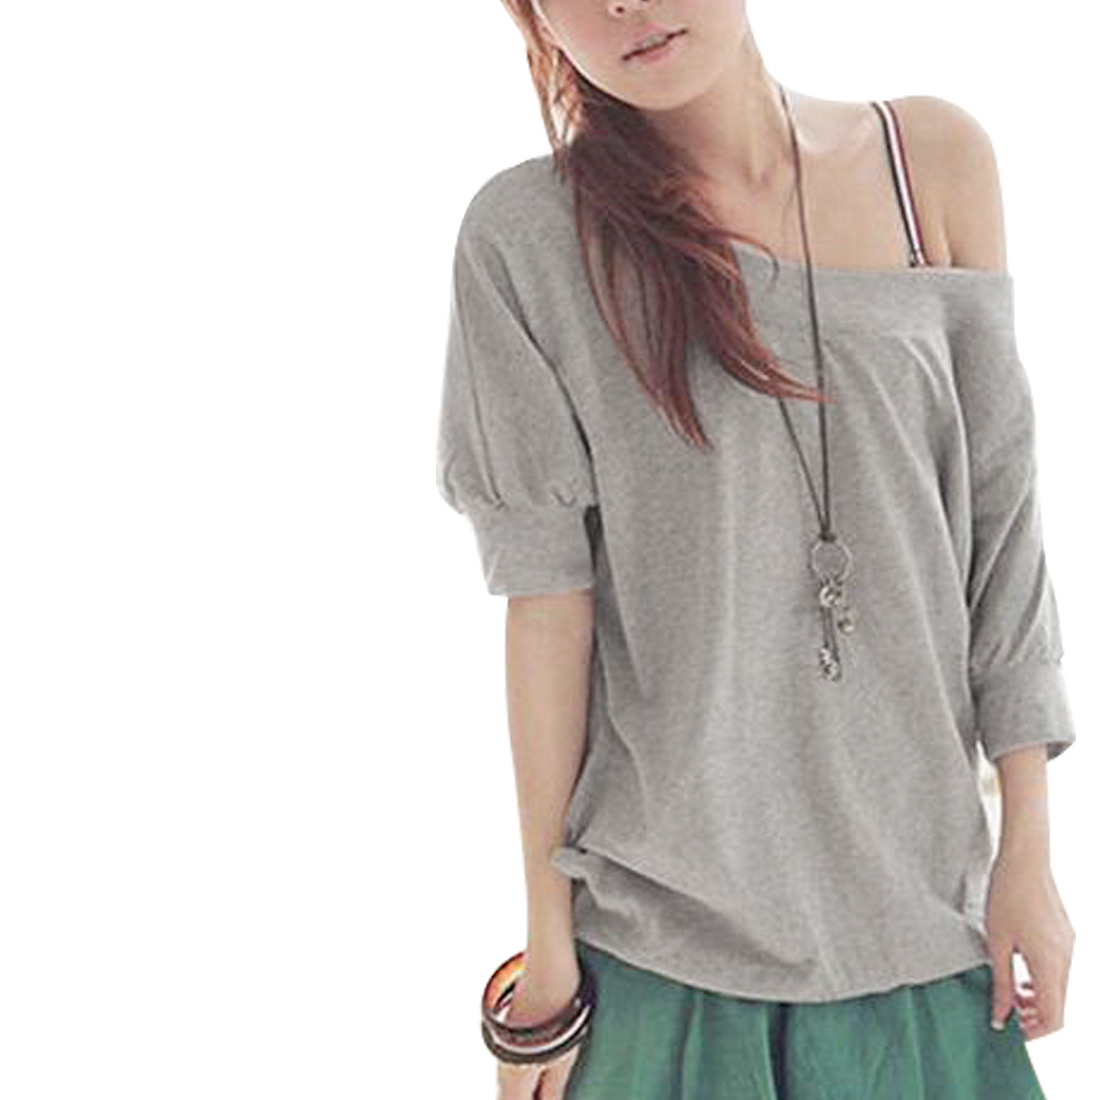 Gray Round Neck Rib Short Sleeve Summer T-Shirt for Women XS